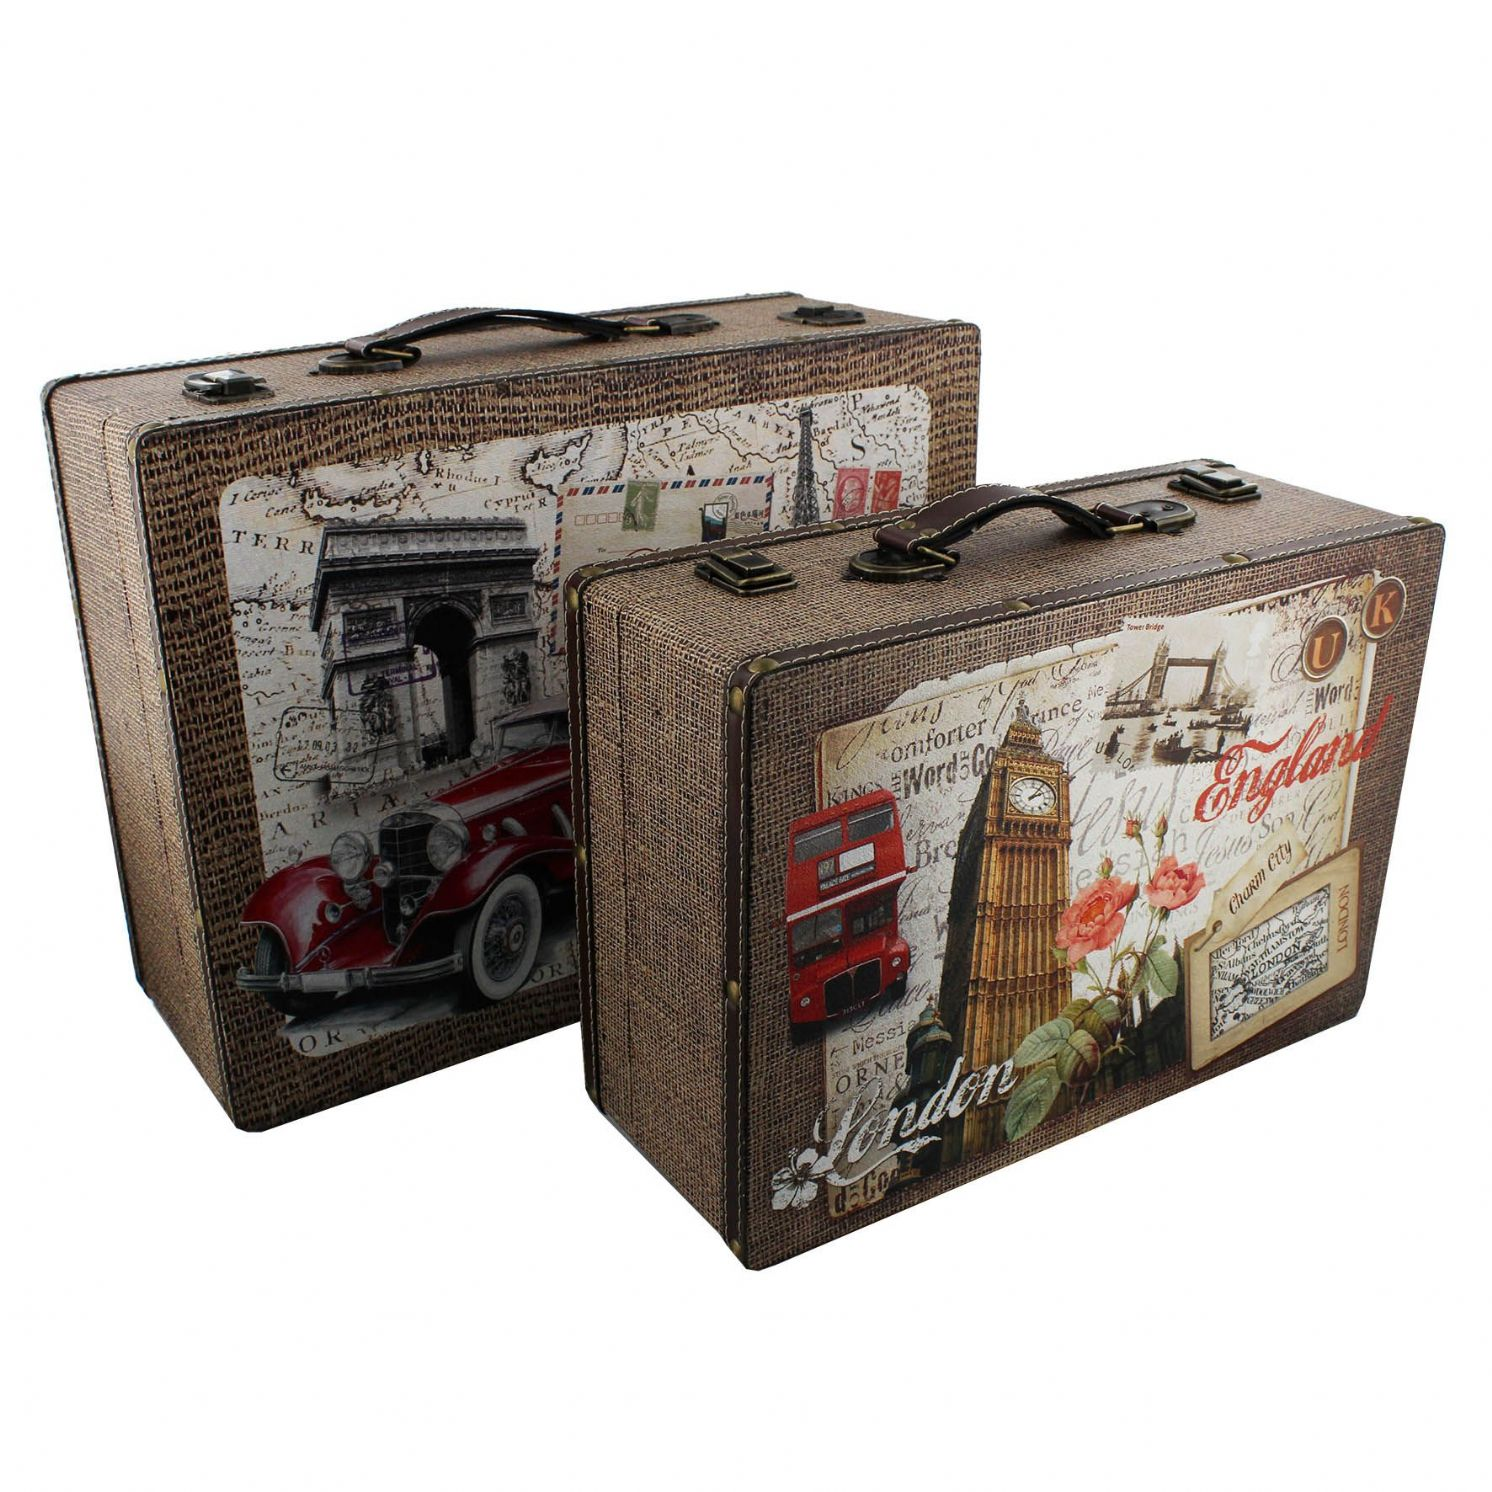 Decorative Storage Boxes Uk : Storage boxes home office asian gourmet